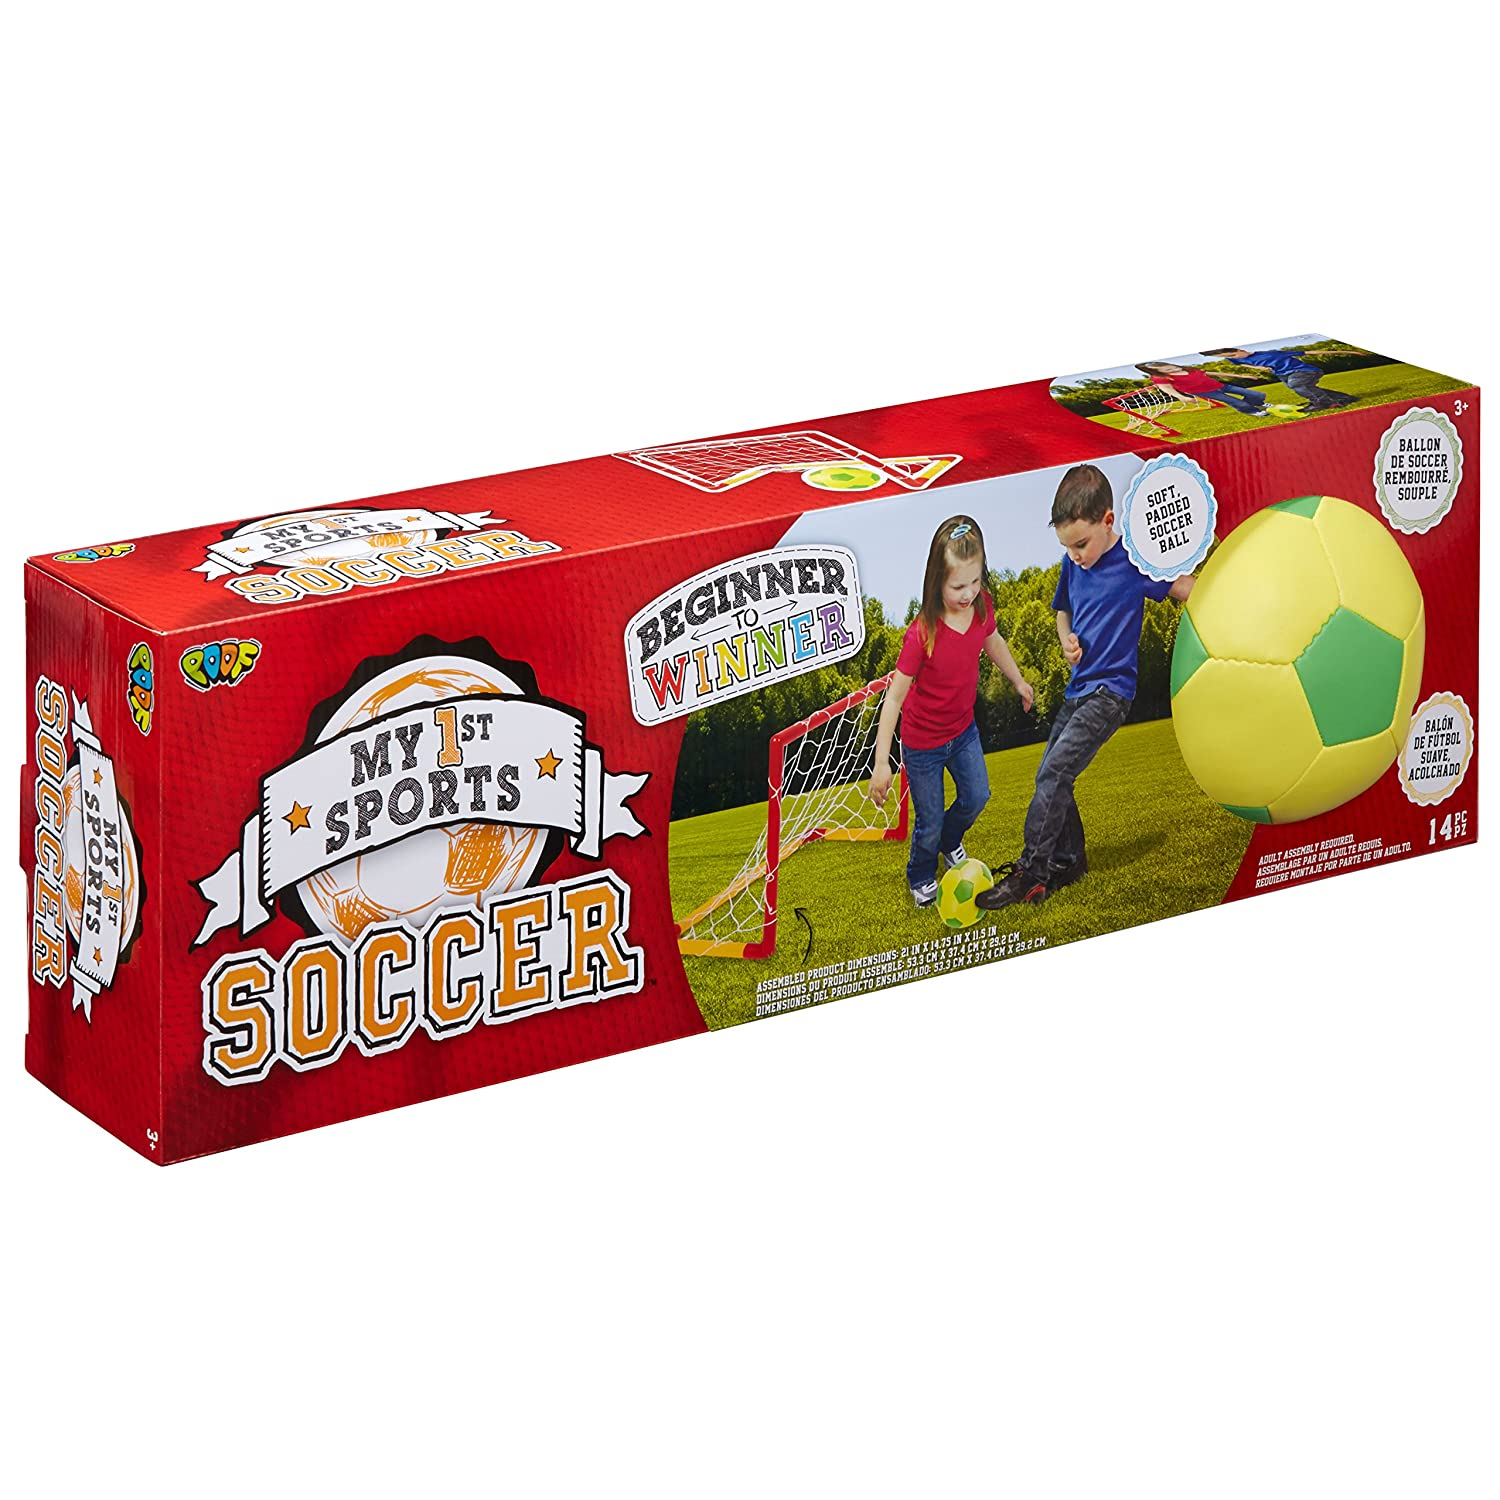 29 x 6 Inches Sportime BataLoons Activity Bats with Elasticized Micromesh Striking Surface Set of 6 Multiple Colors School Specialty 033111